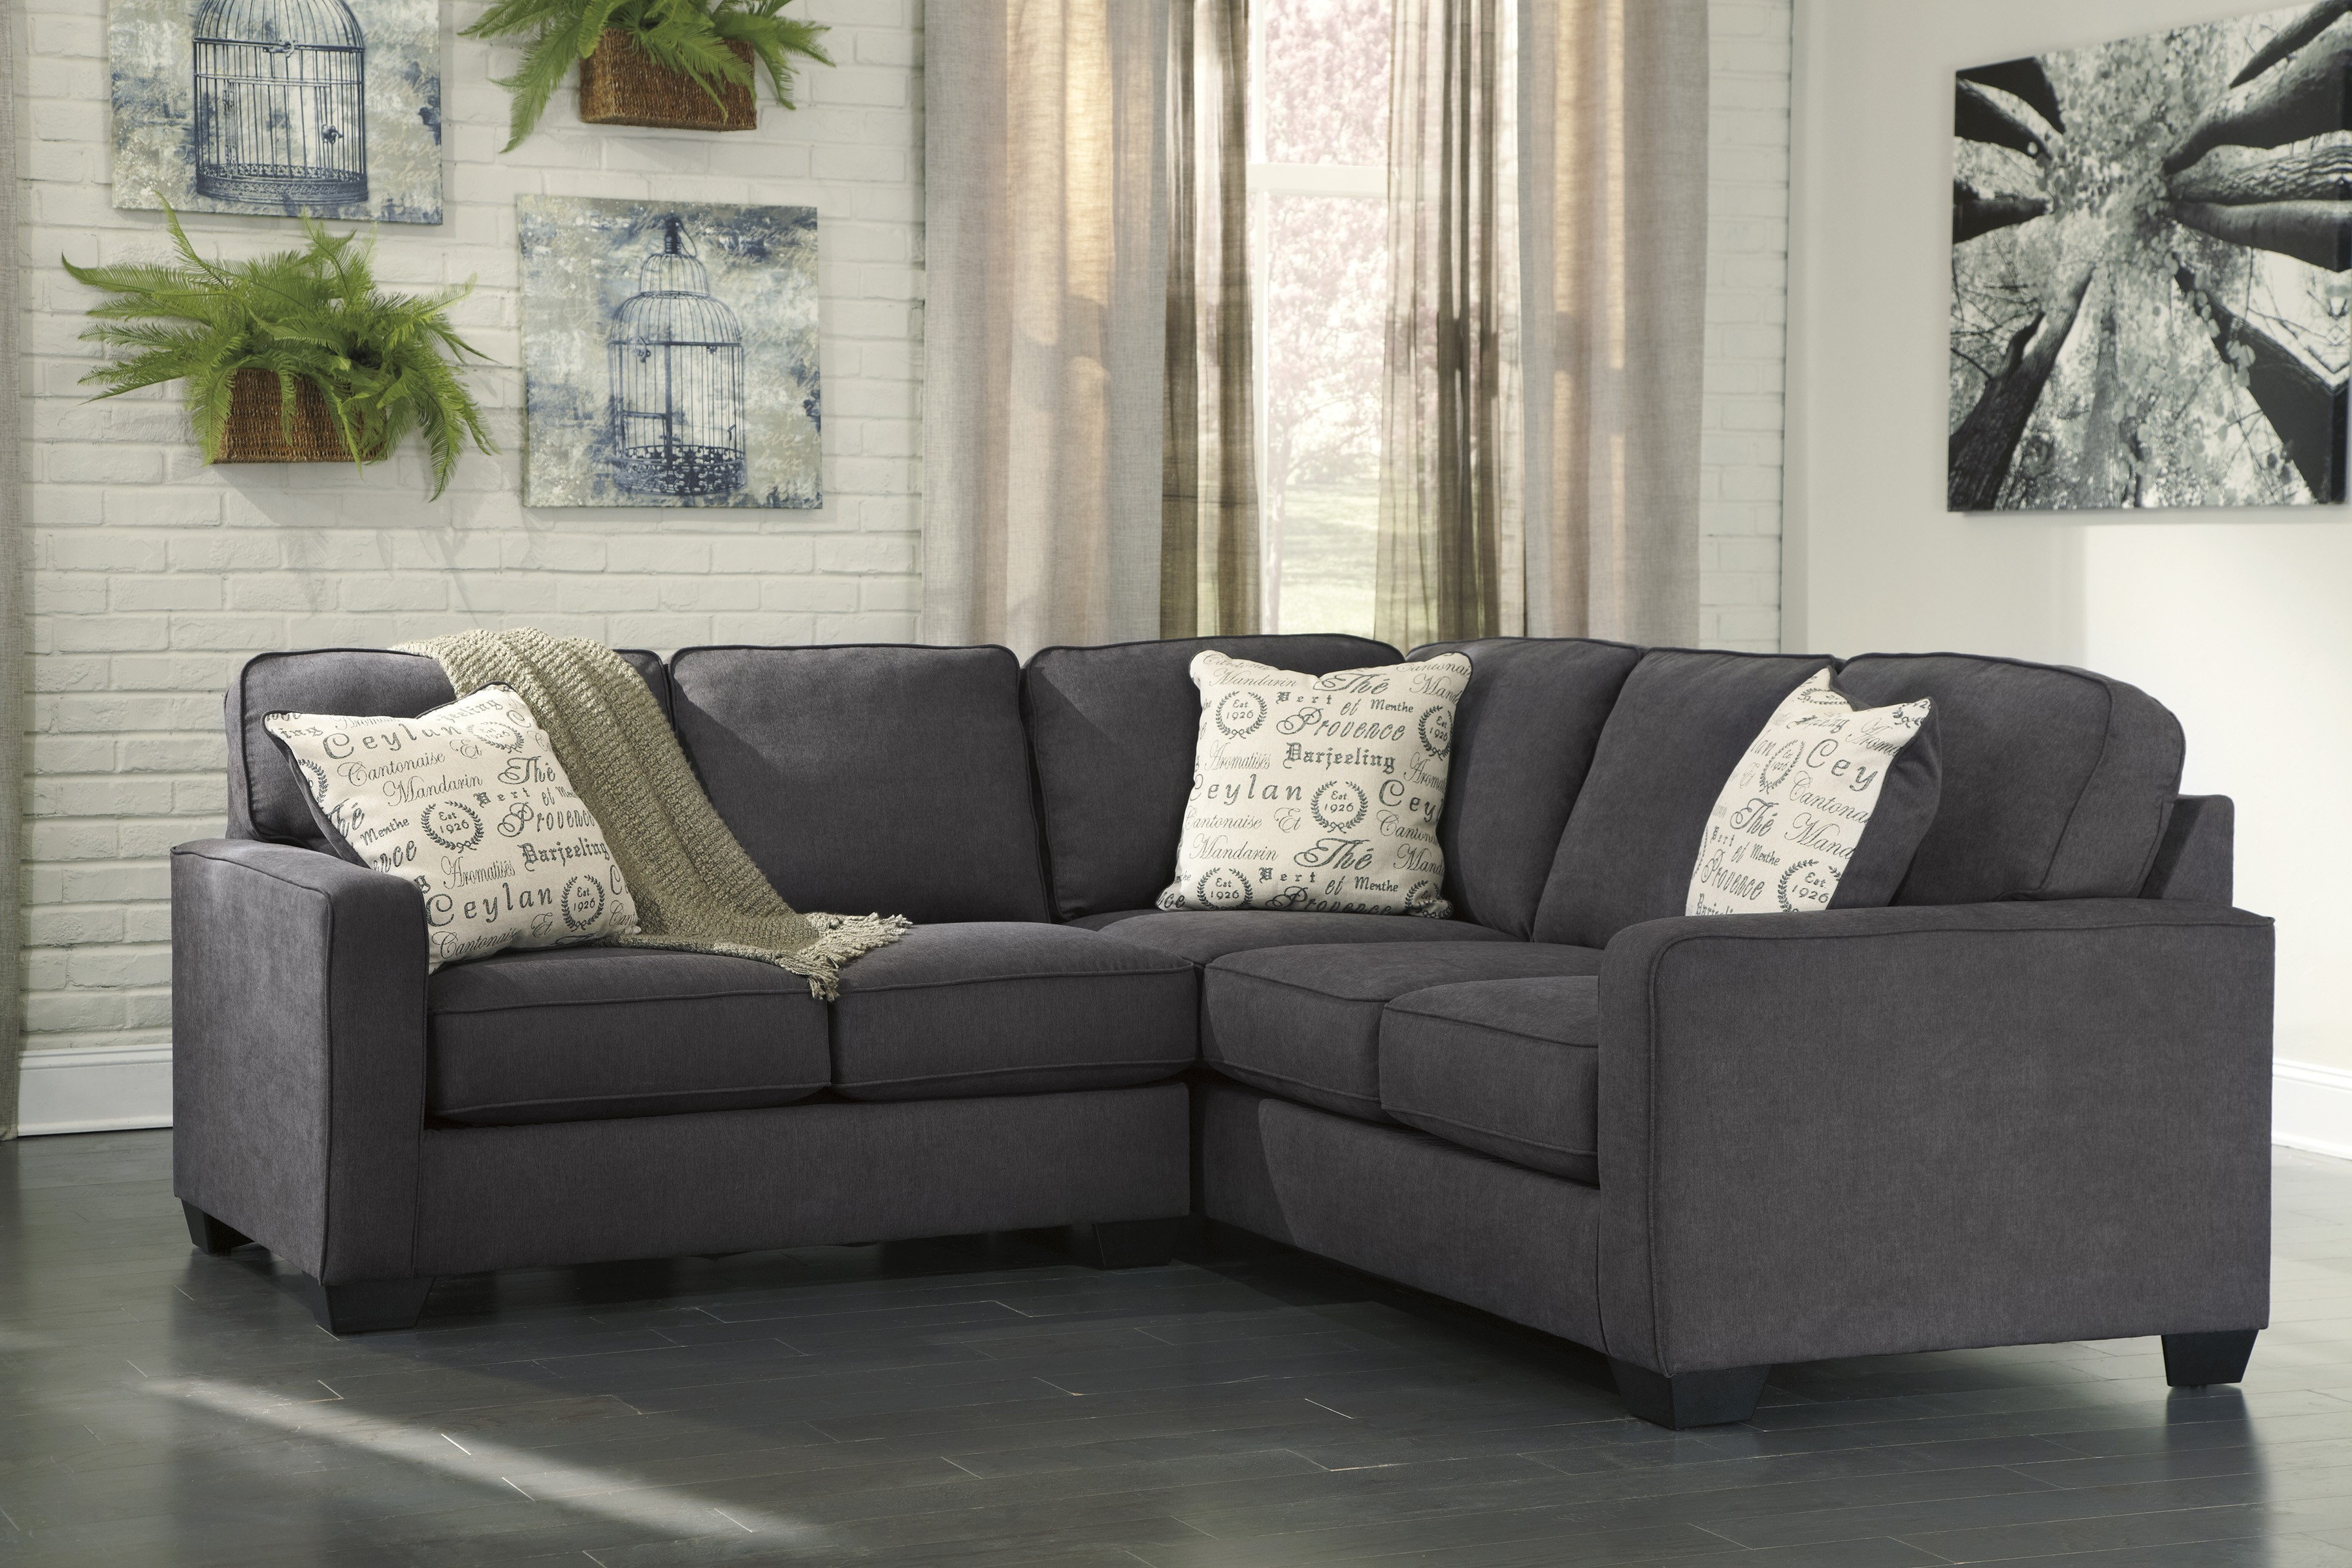 Most Popular Aspen 2 Piece Sectionals With Laf Chaise Inside Alenya Charcoal Piece Sectional Sofa For Furnitureusa Raf Love (View 16 of 20)